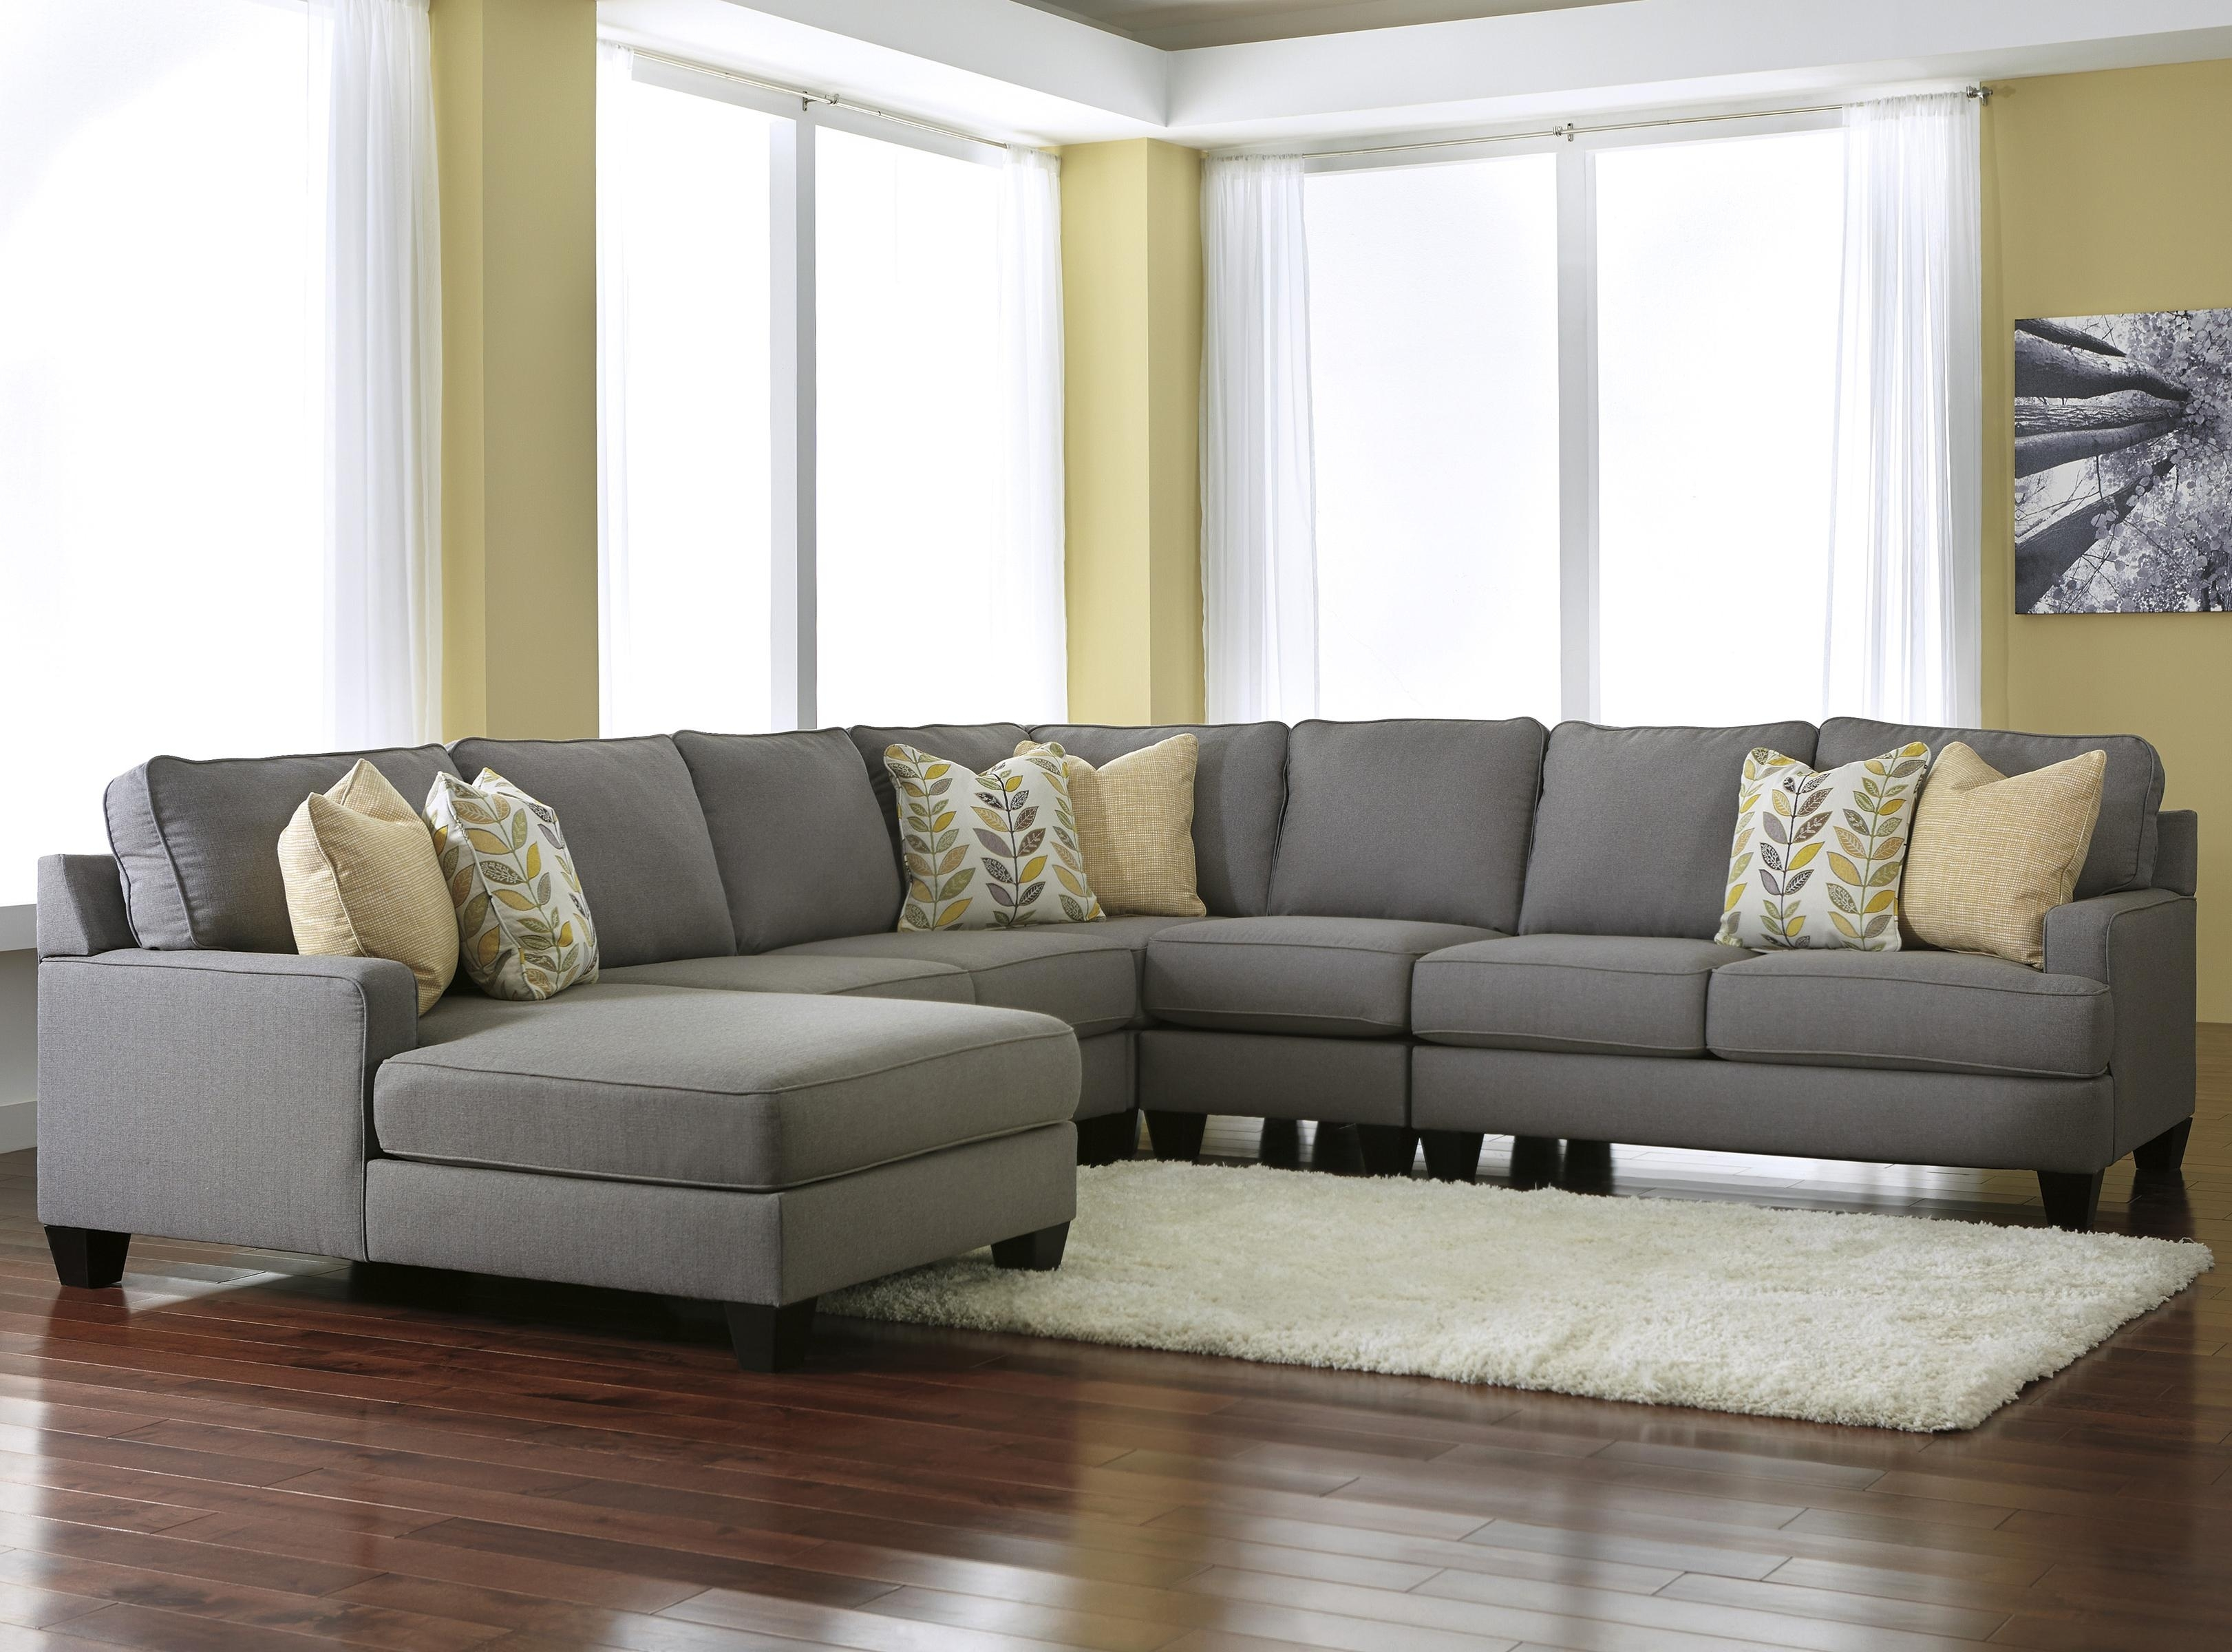 Signature Designashley Chamberly – Alloy Modern 5 Piece In Clarksville Tn Sectional Sofas (View 4 of 10)